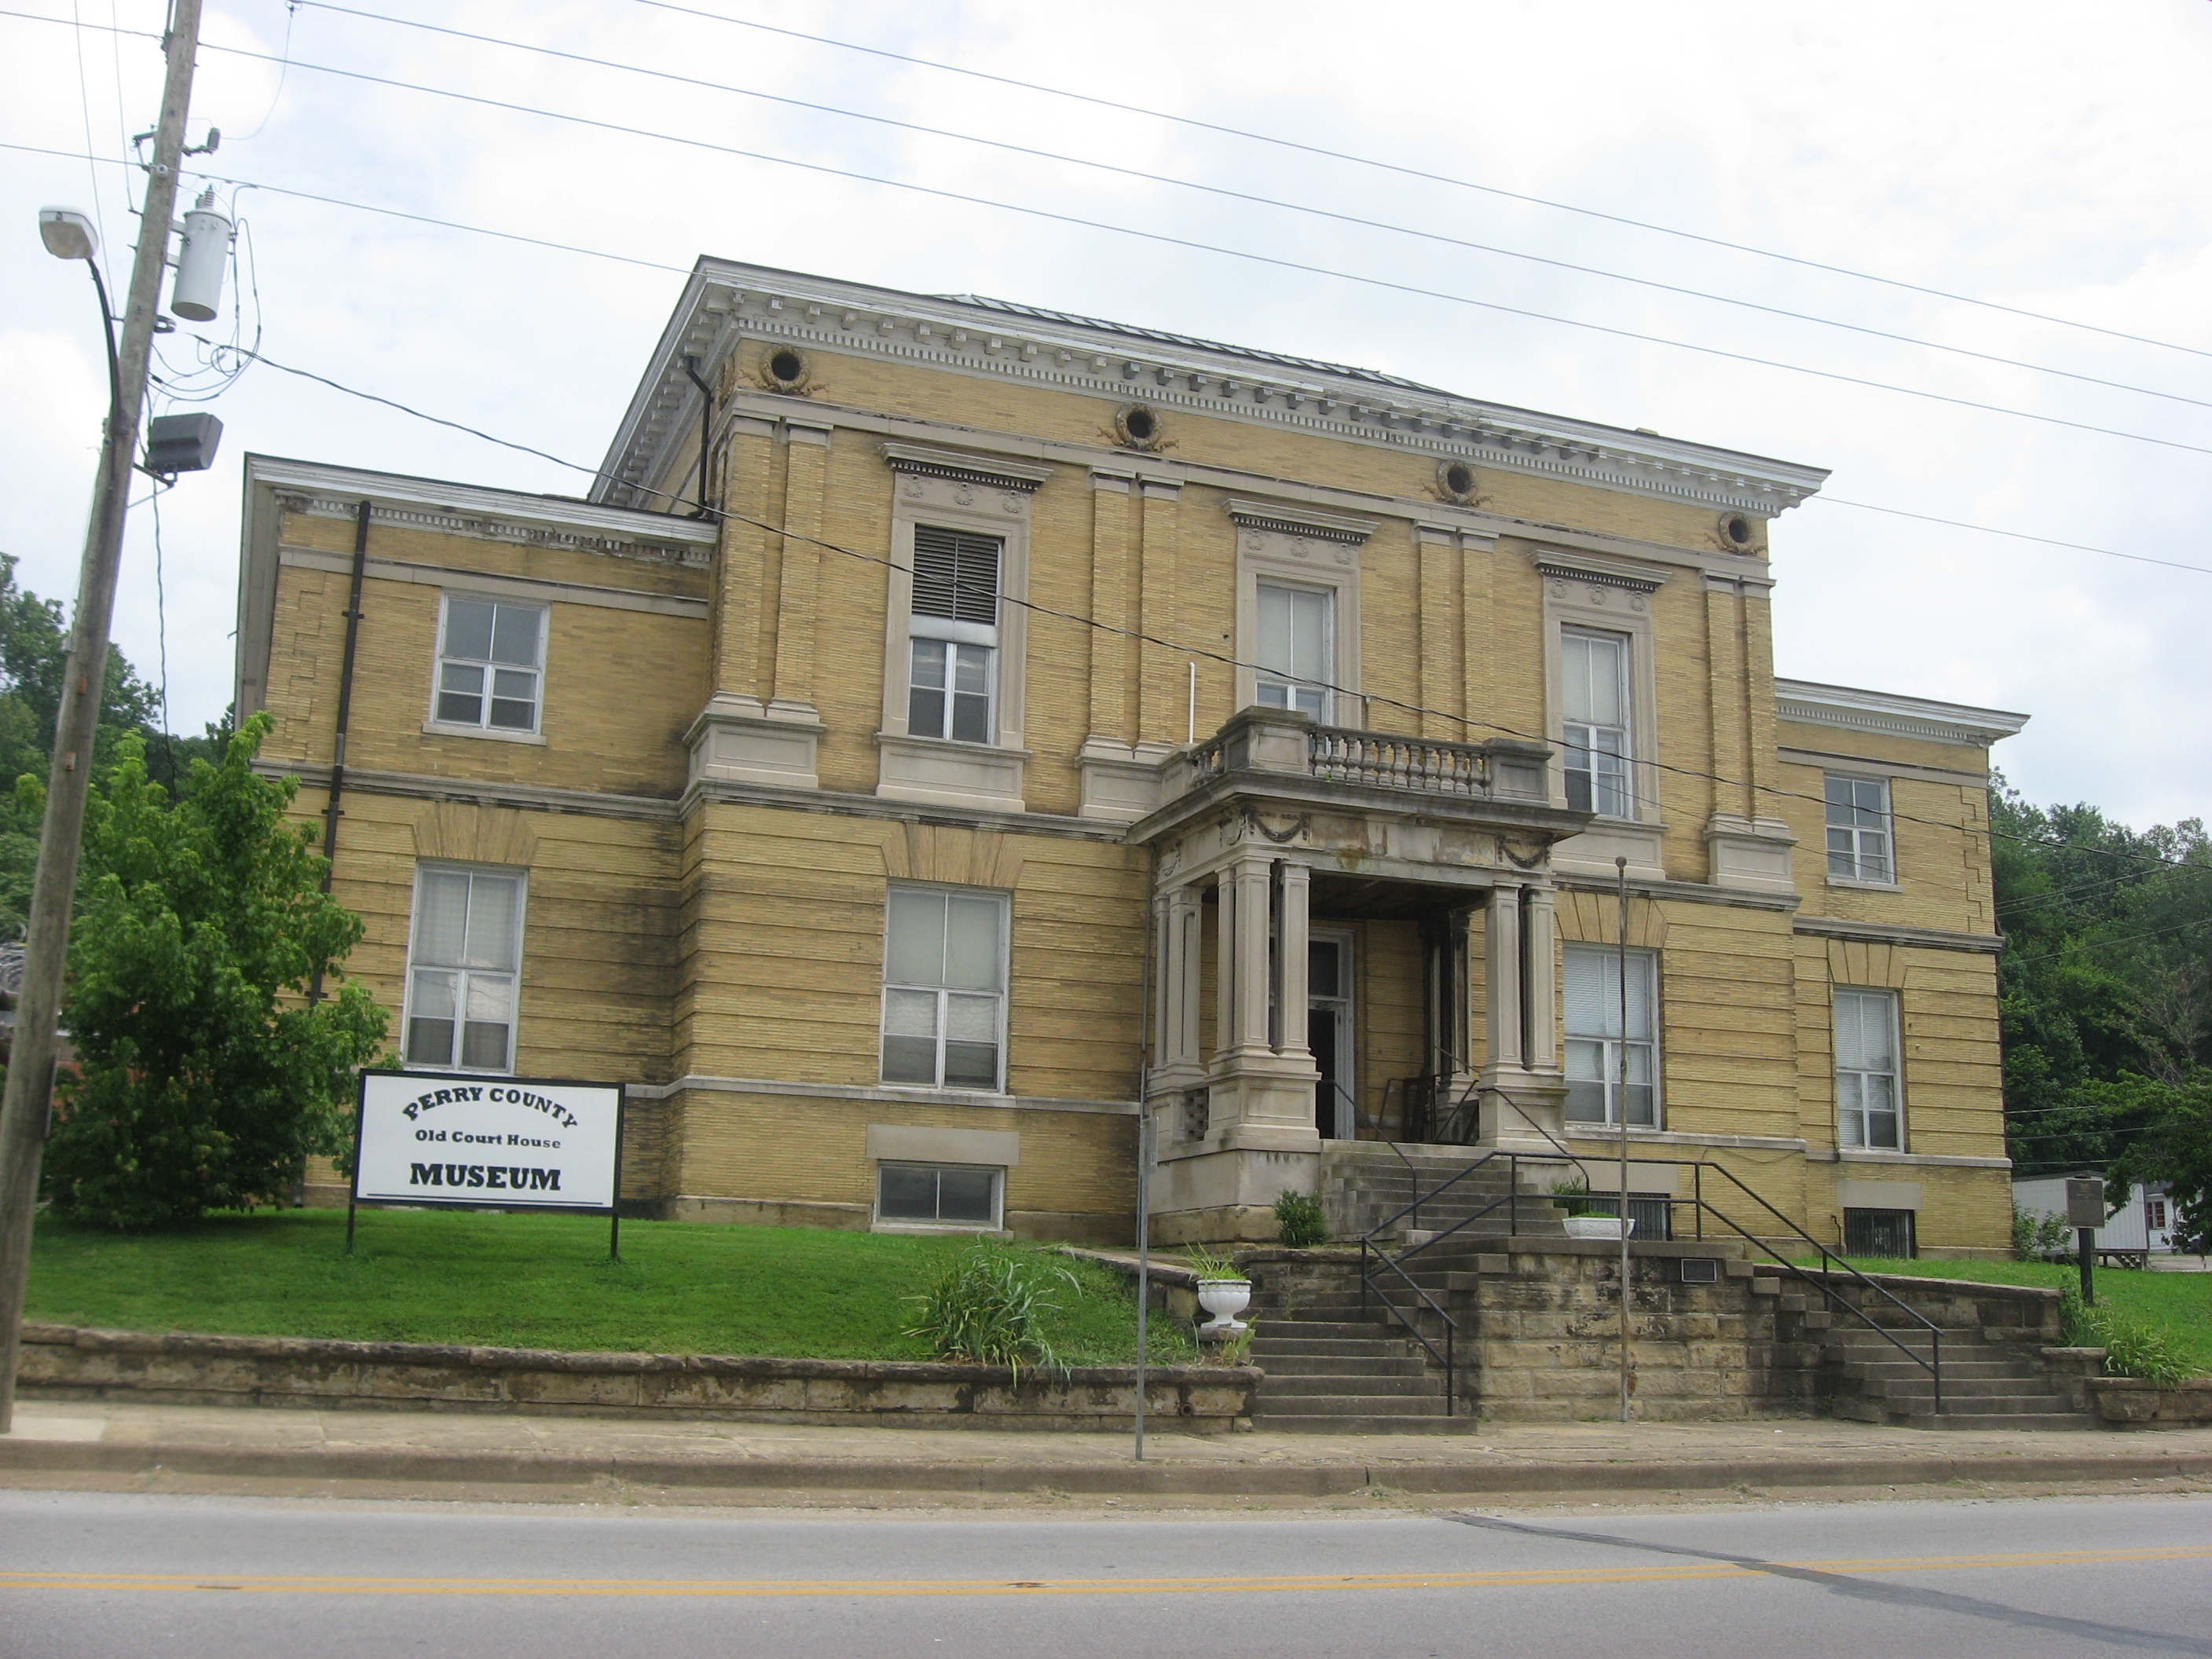 Indiana perry county cannelton - File Old Perry County Courthouse In Cannelton Jpg